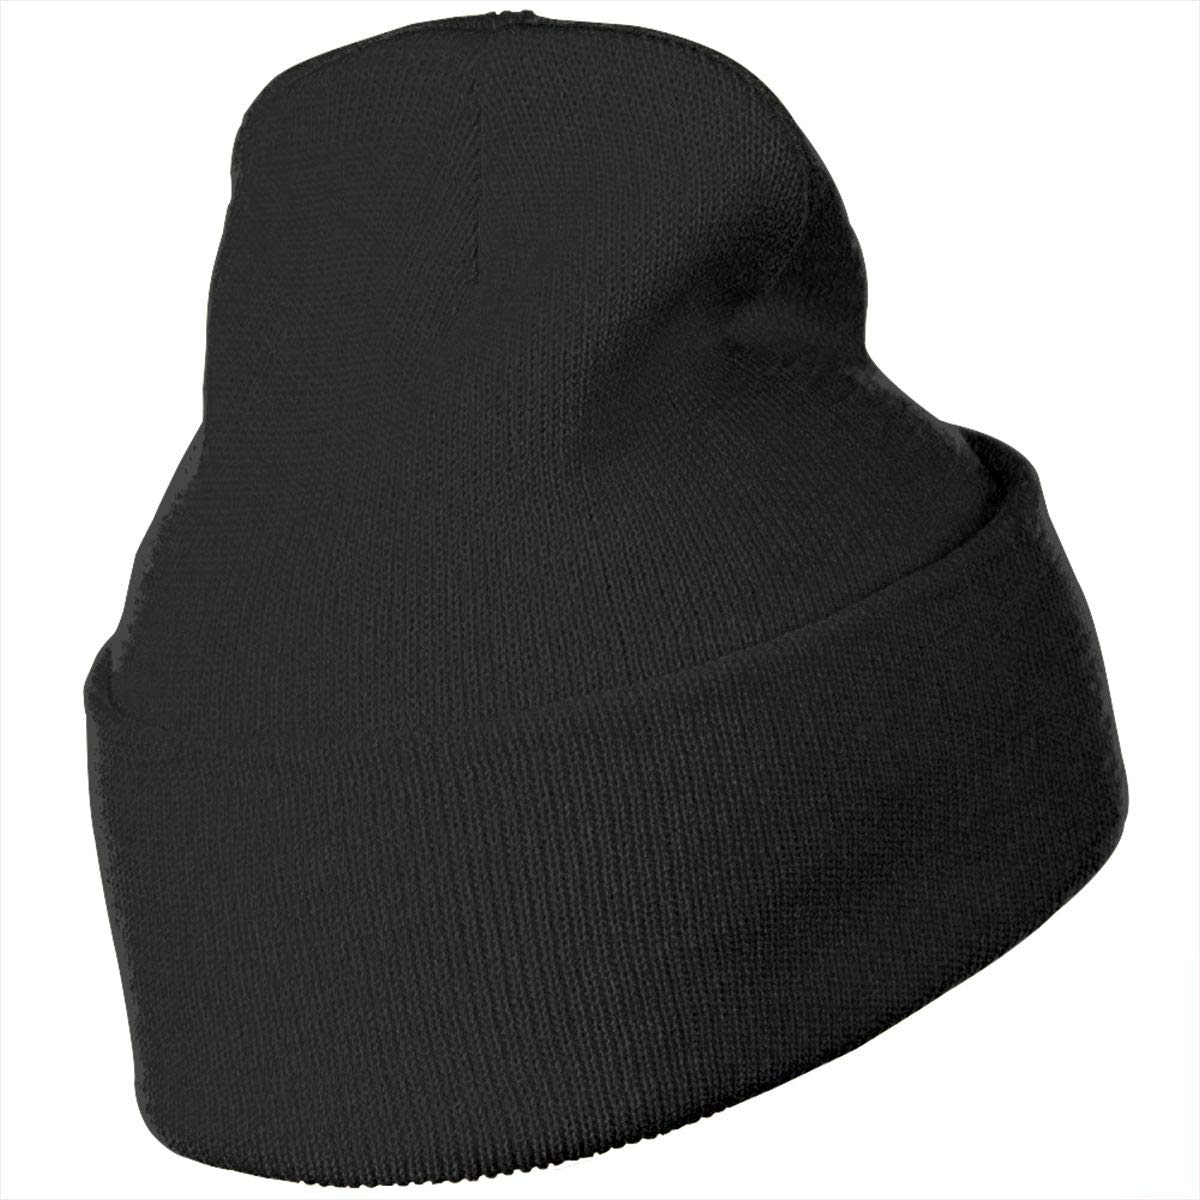 Dragon and Skull Hat for Men and Women Winter Warm Hats Knit Slouchy Thick Skull Cap Black